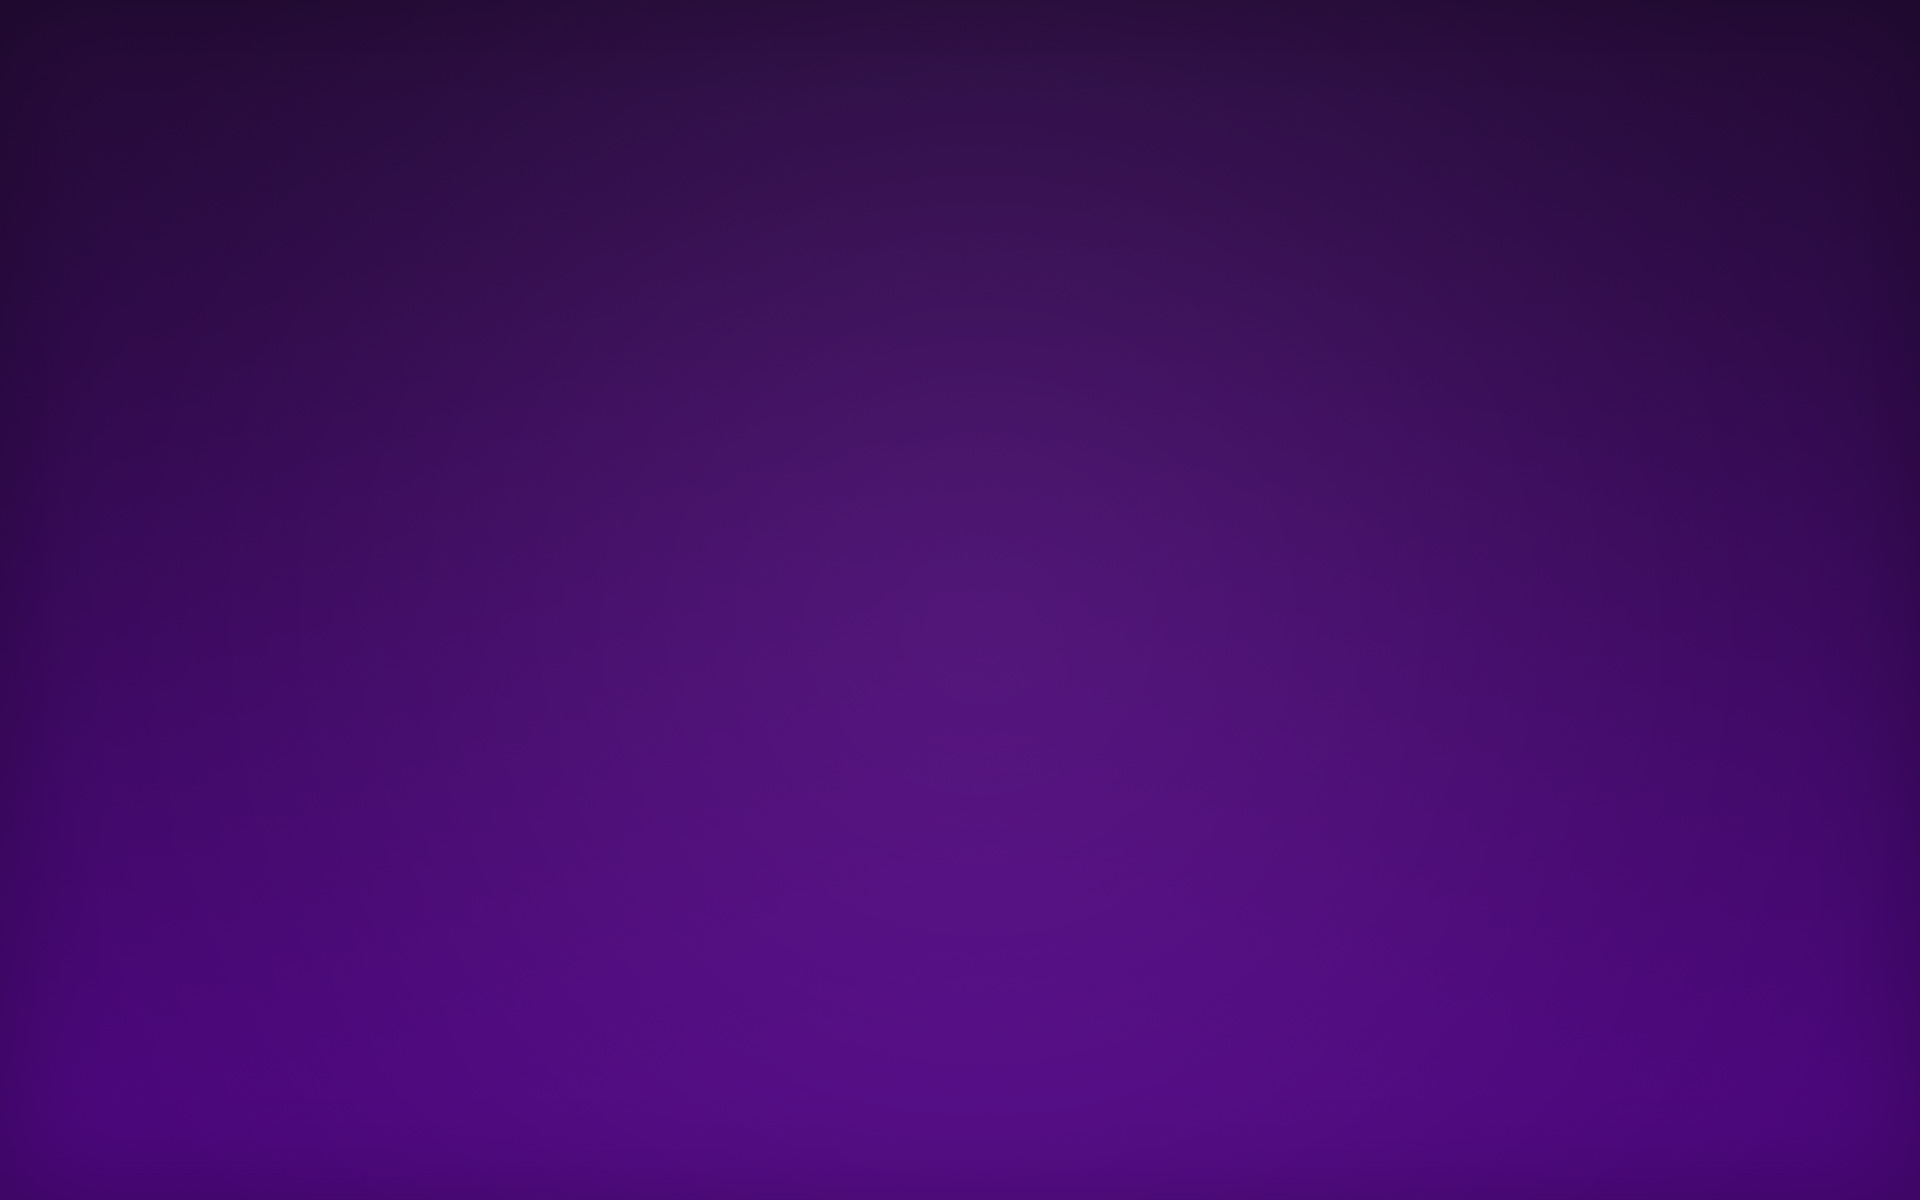 Purple Wallpaper For Computer wallpaper   207458 1920x1200